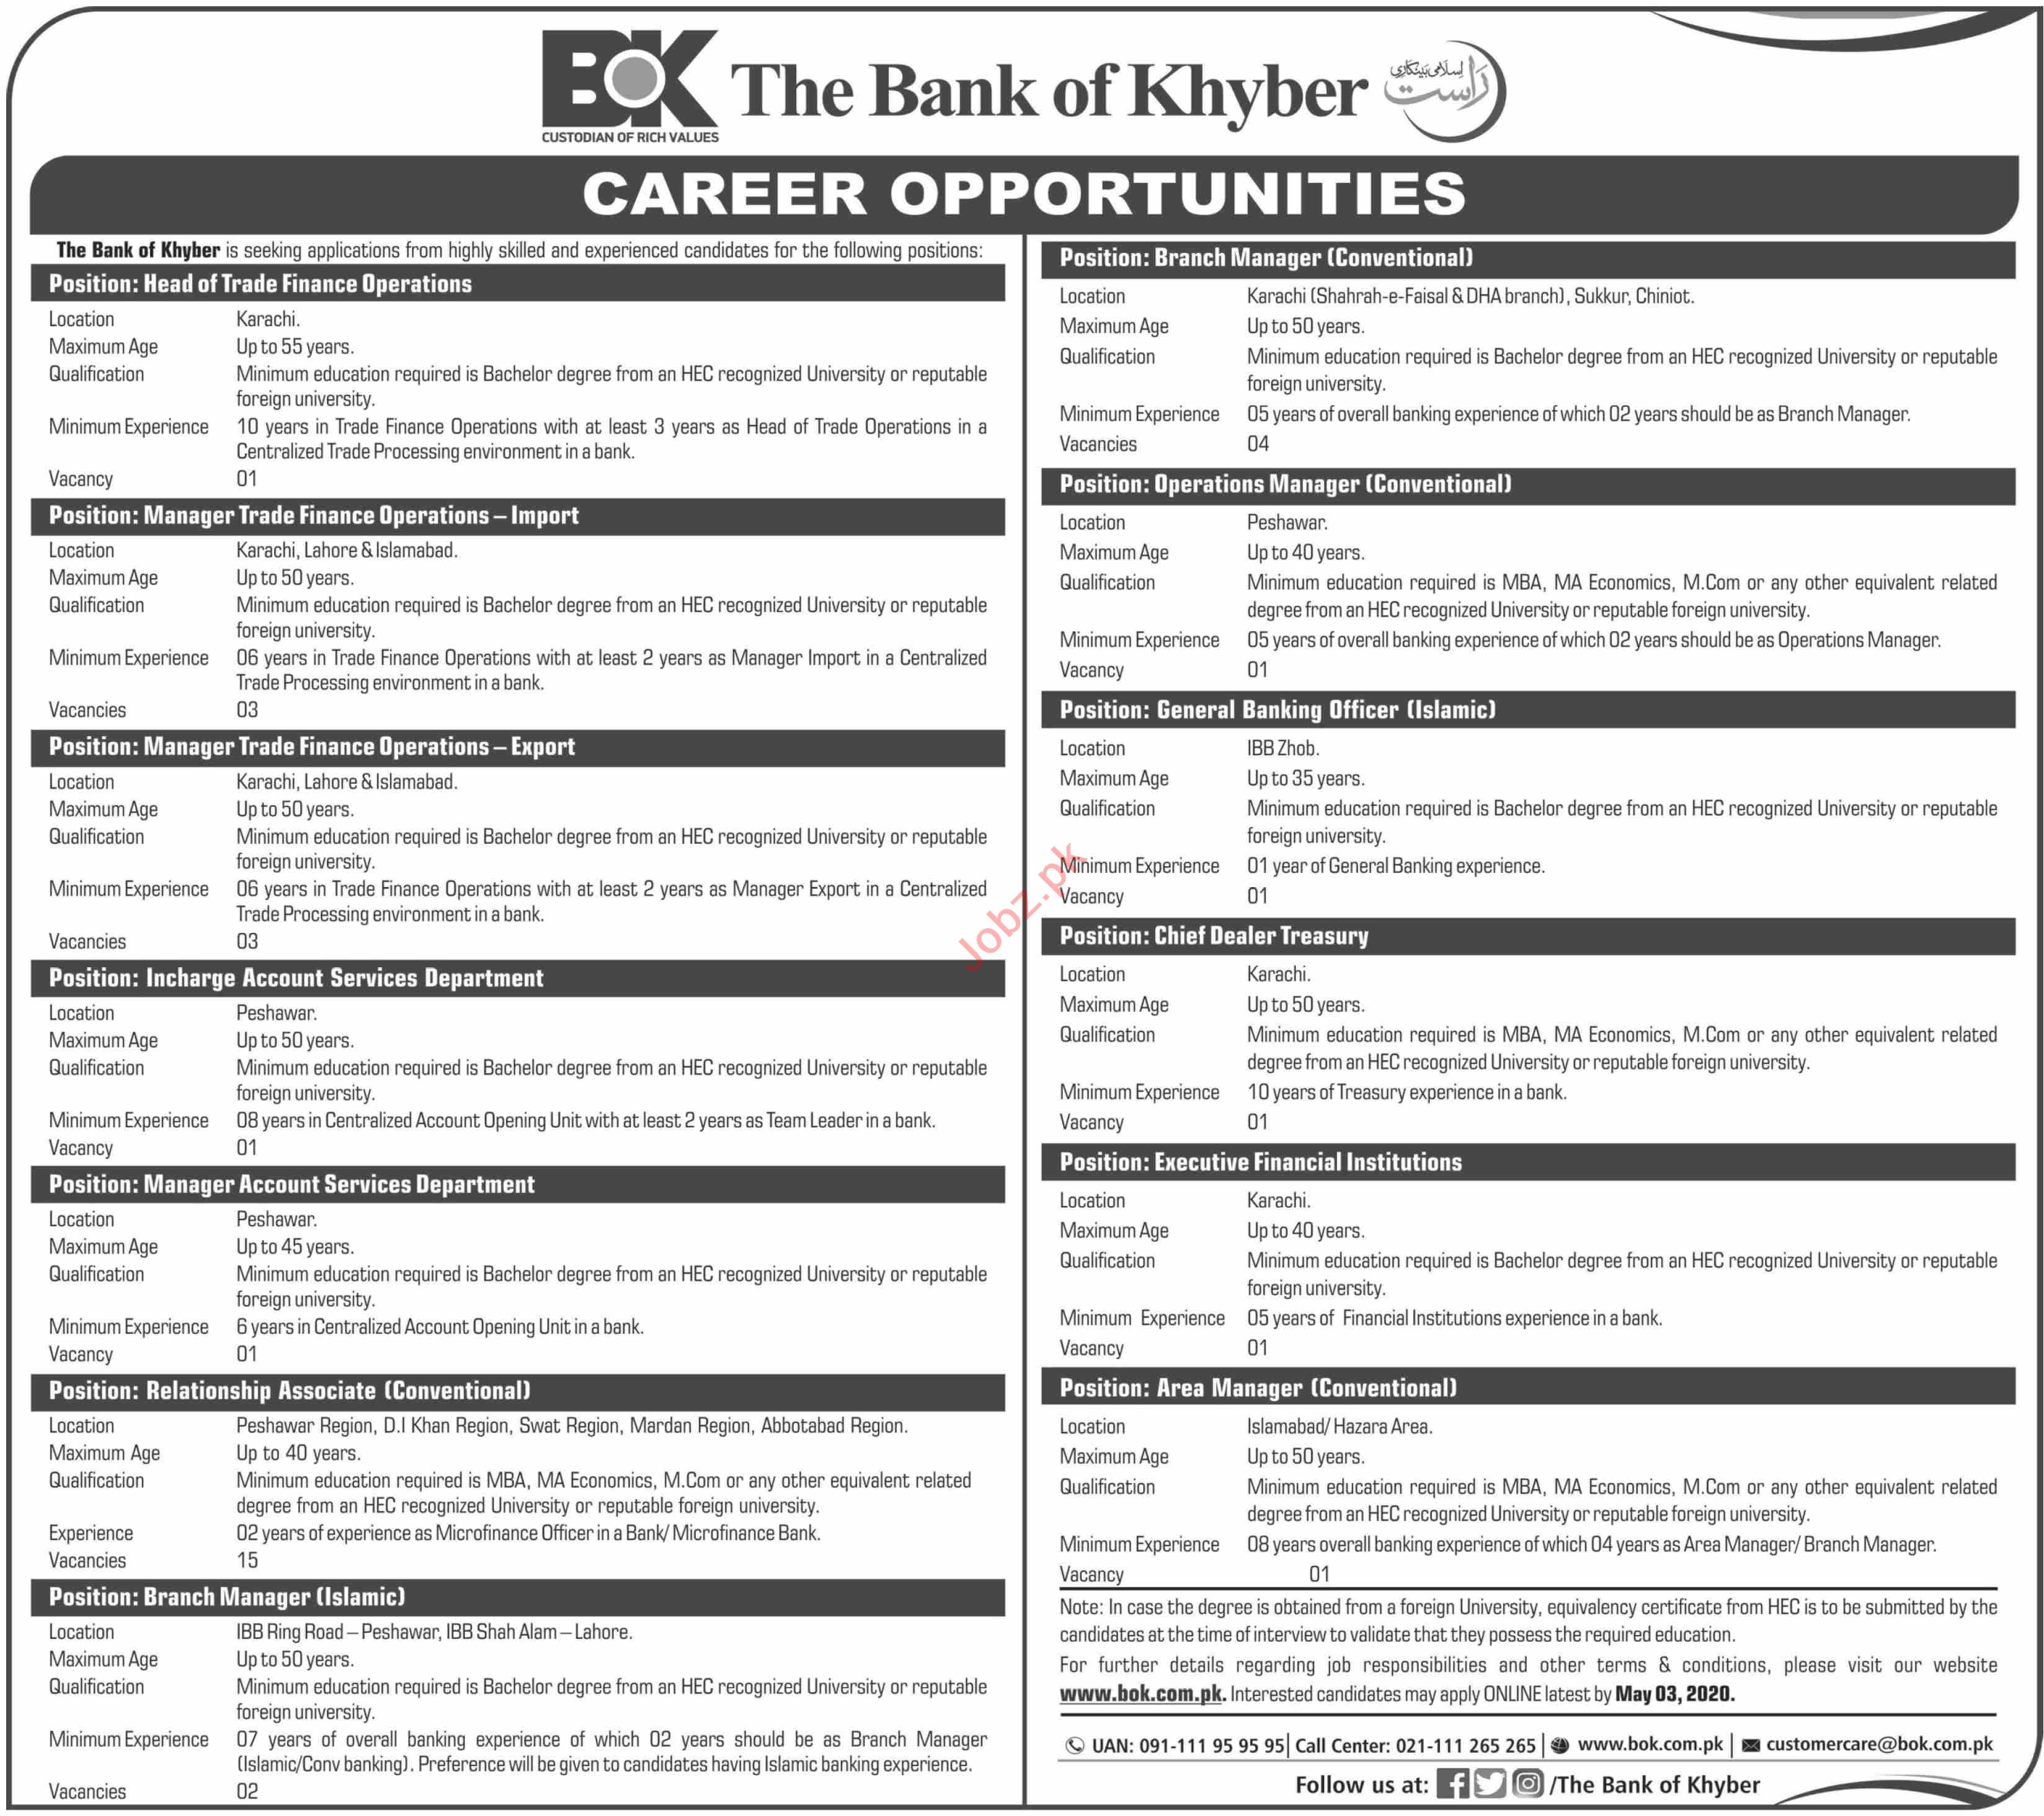 Bank of Khyber BOK Jobs 2020 for Managers